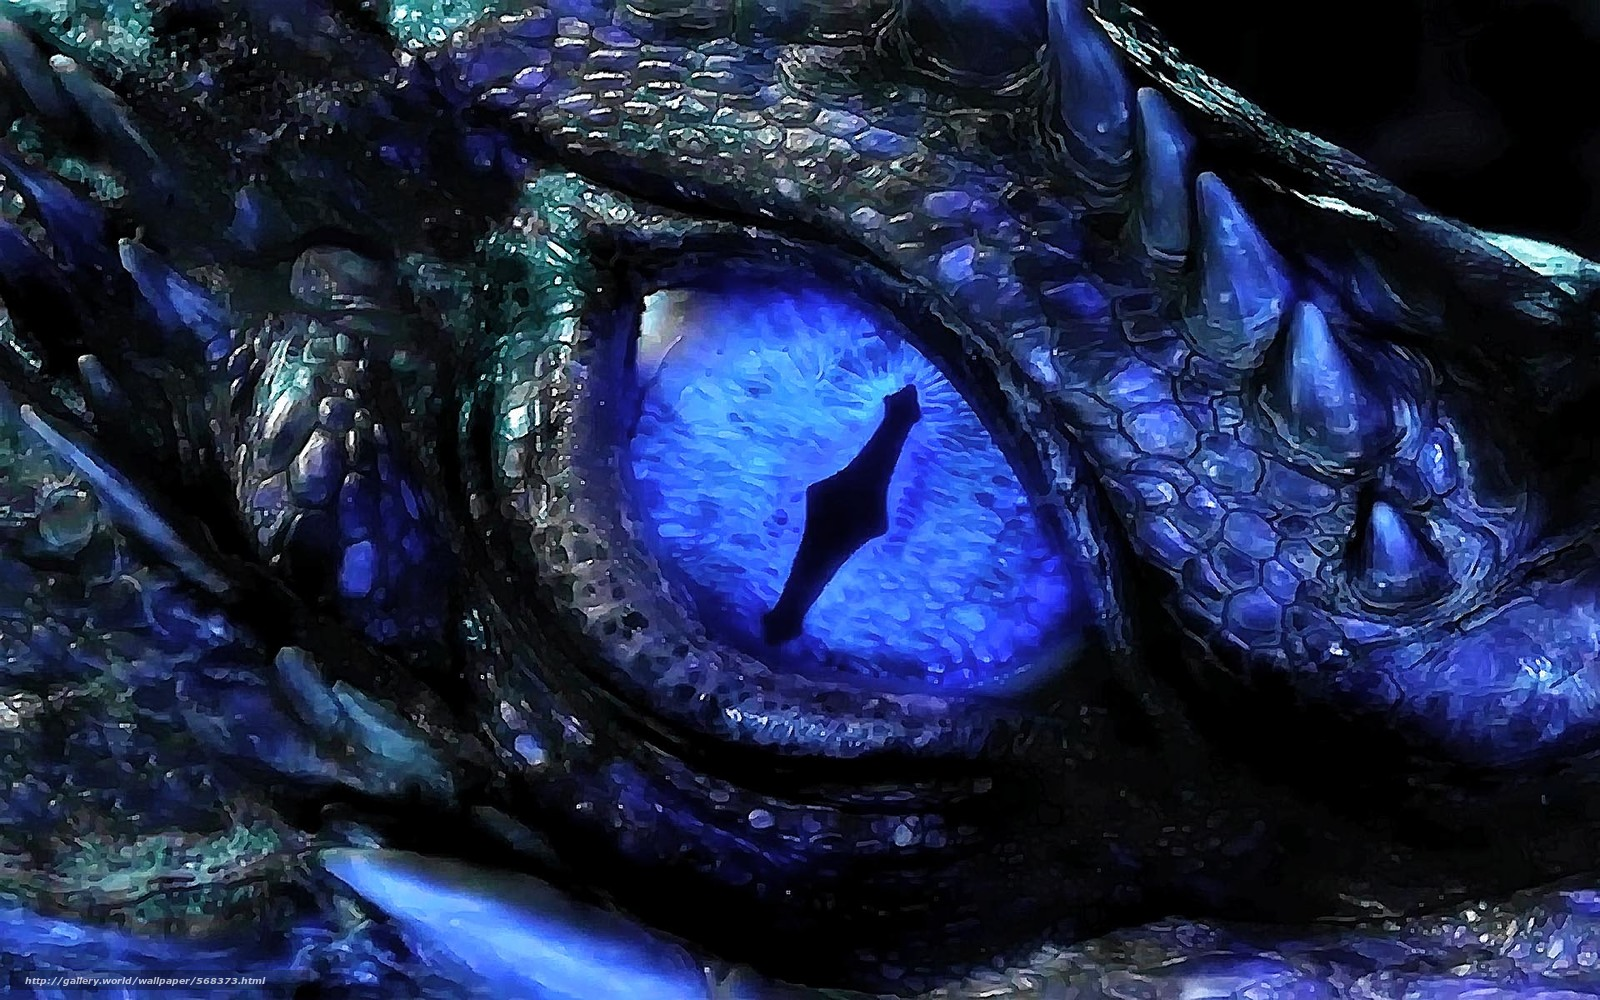 Dragon Images Stock Photos amp Vectors  Shutterstock